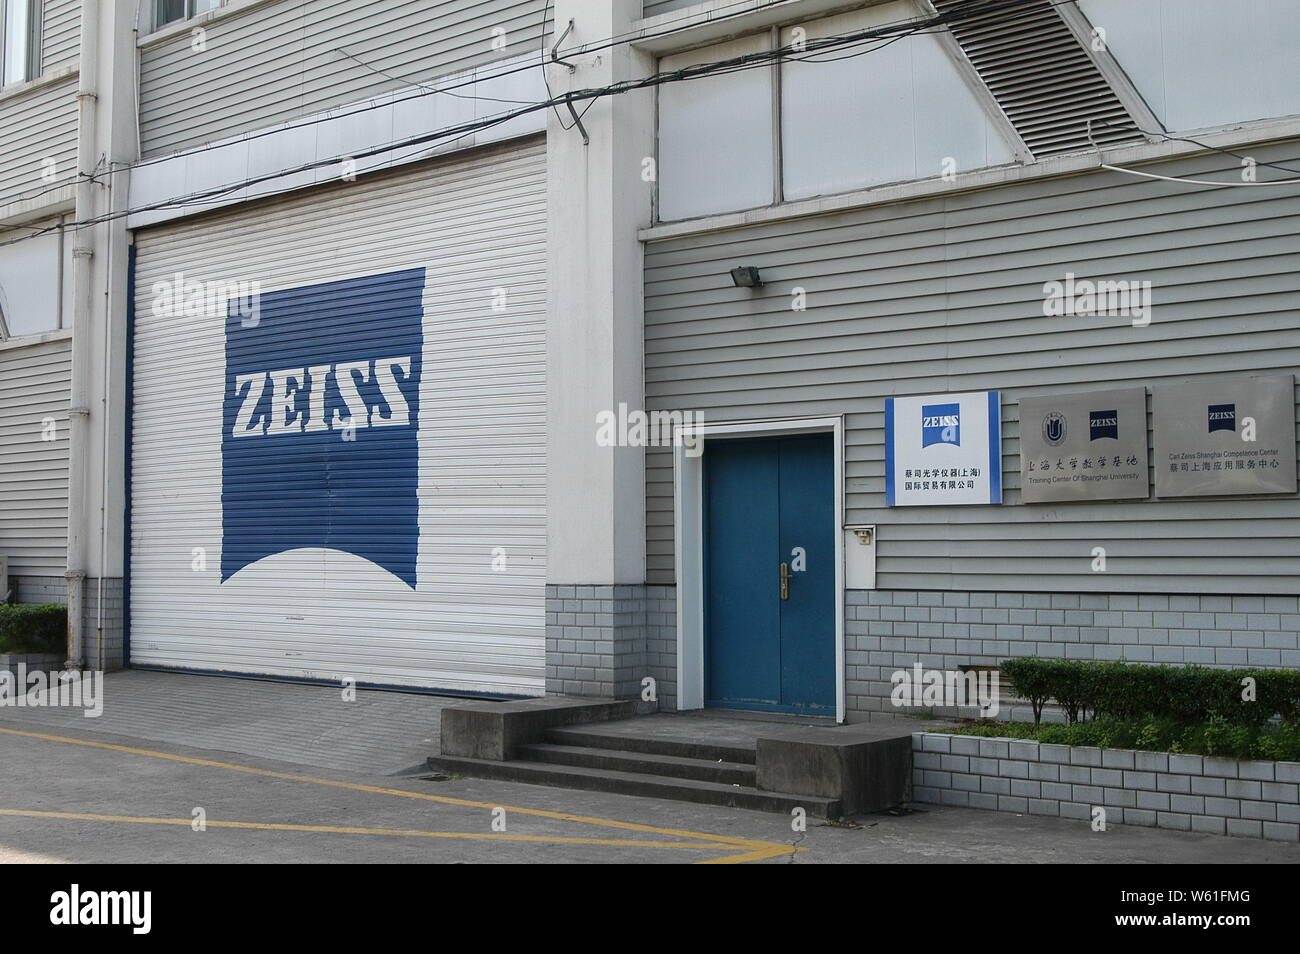 Carl Zeiss Ag Stock Photos & Carl Zeiss Ag Stock Images - Alamy